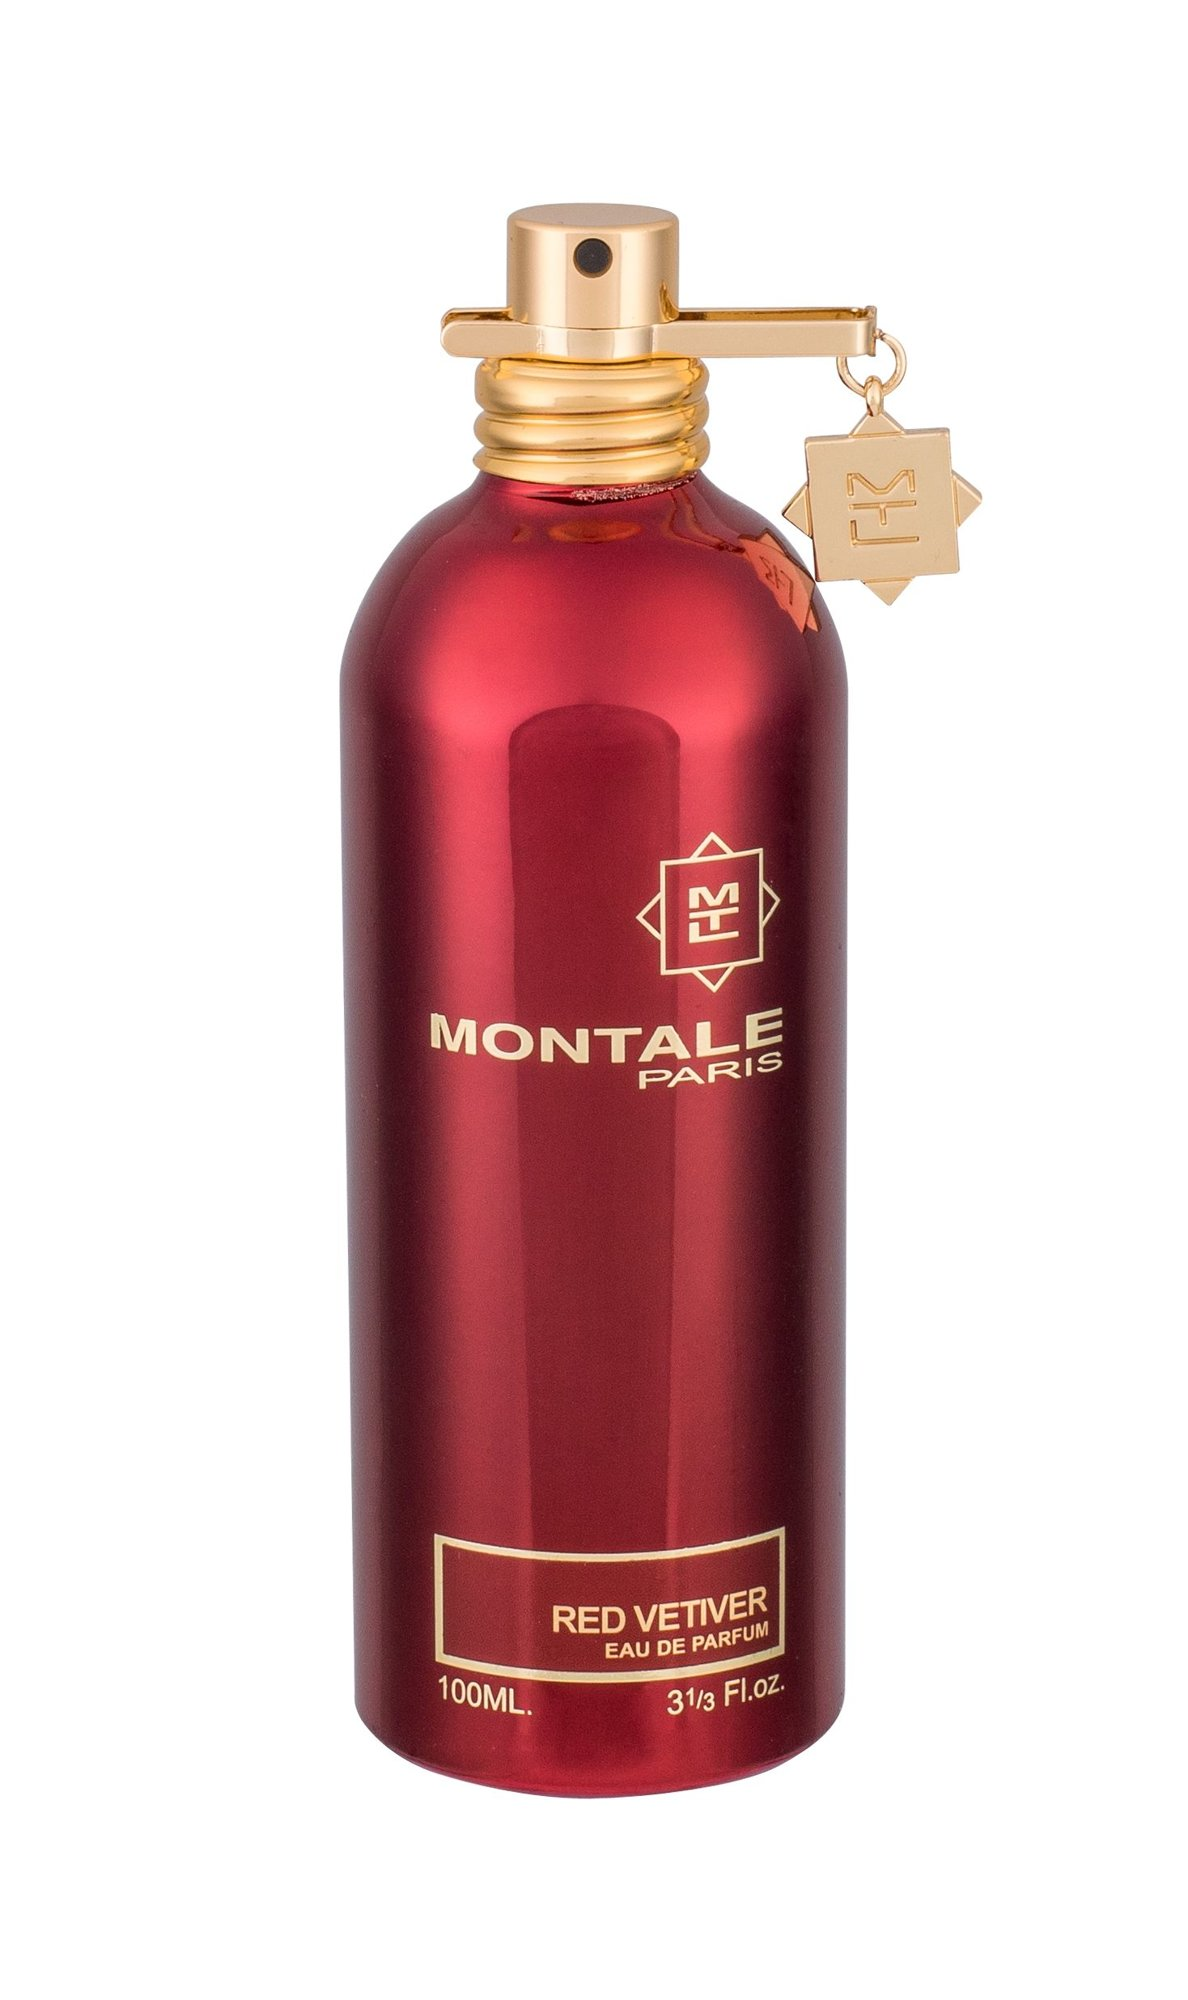 Montale Paris Red Vetyver EDP 100ml